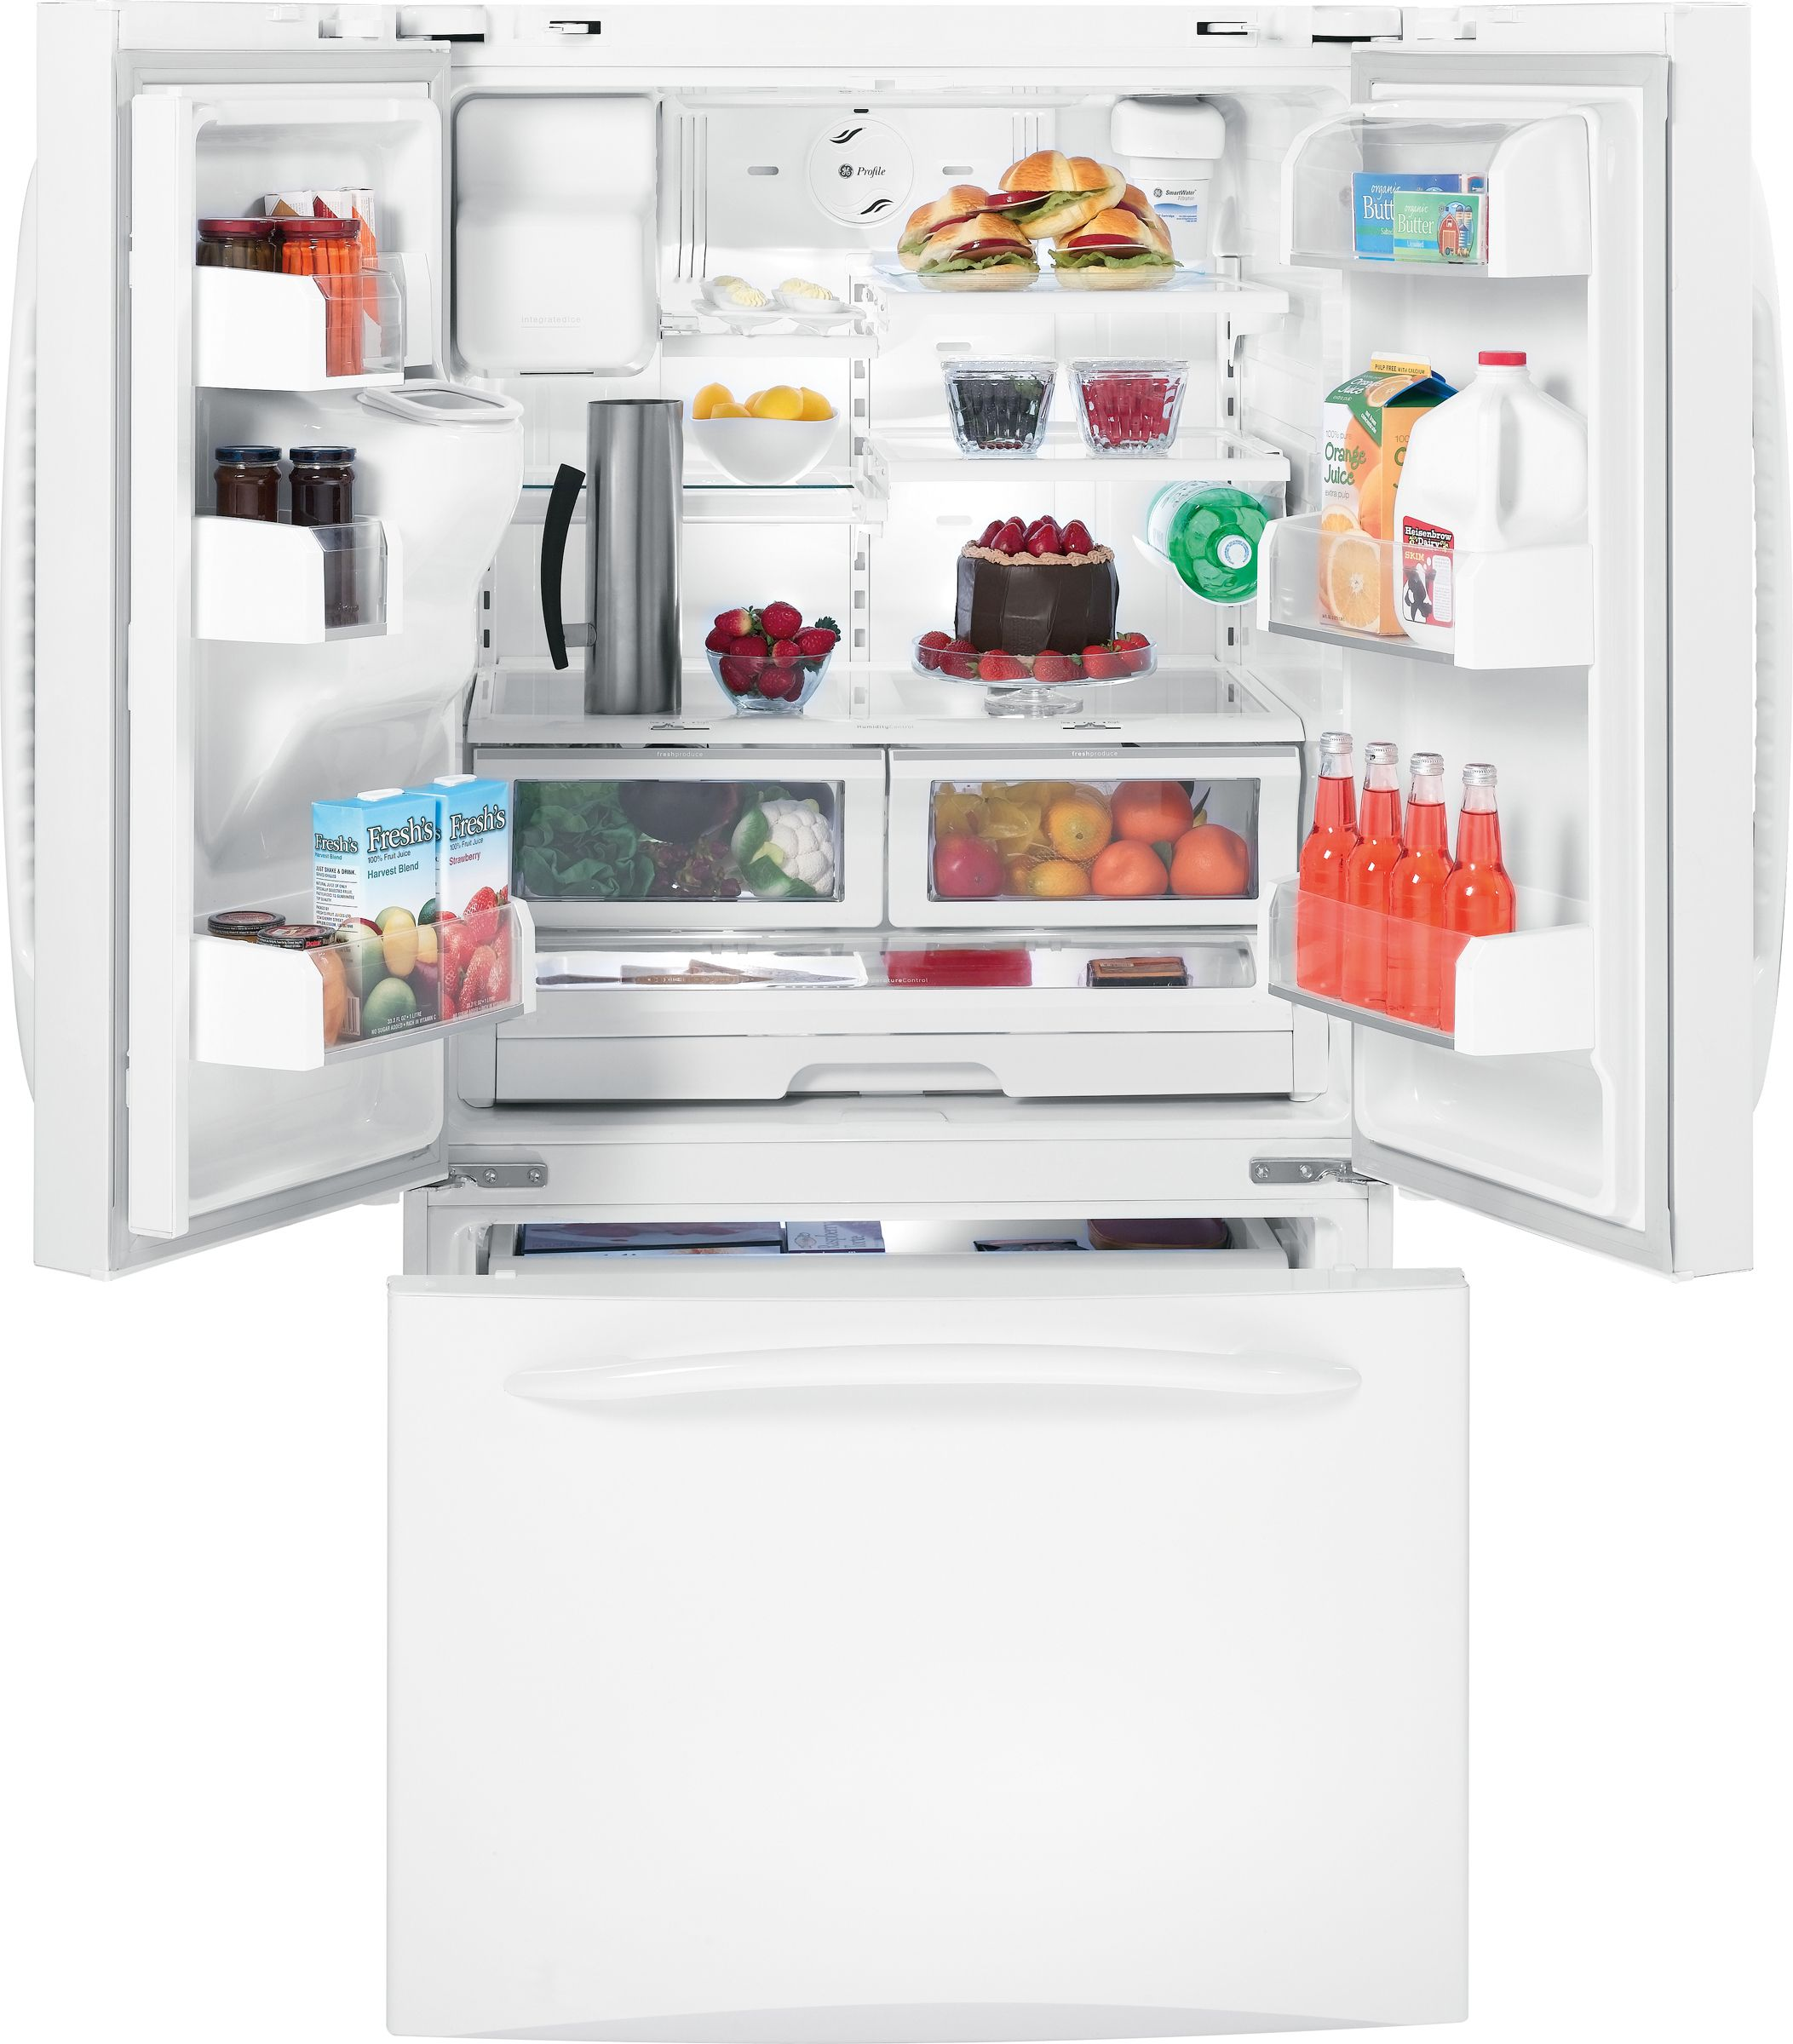 GE 25.5 cu. ft. French Door Refrigerator